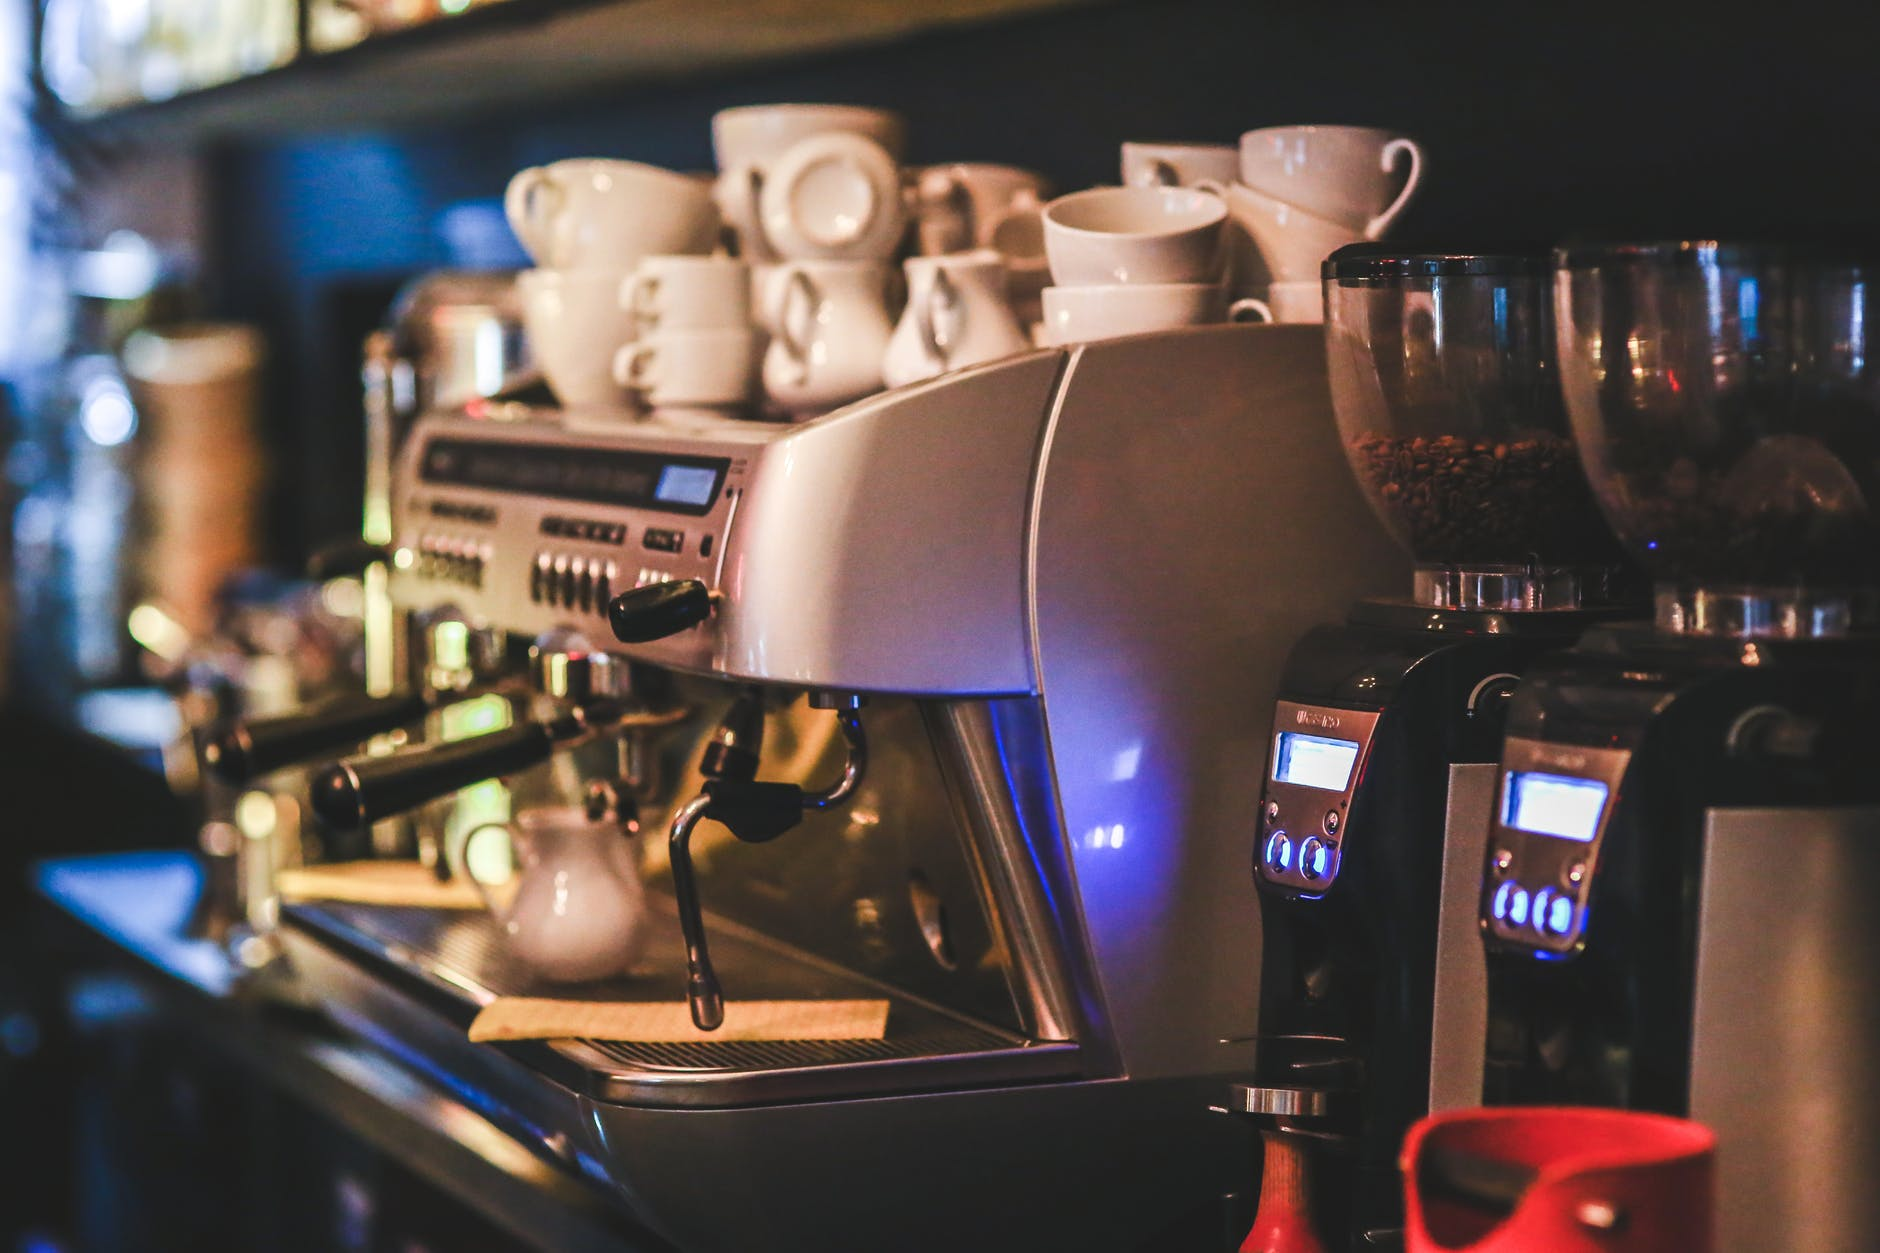 Coffee Maker Buying Guide: How to Choose the Best Coffee Maker